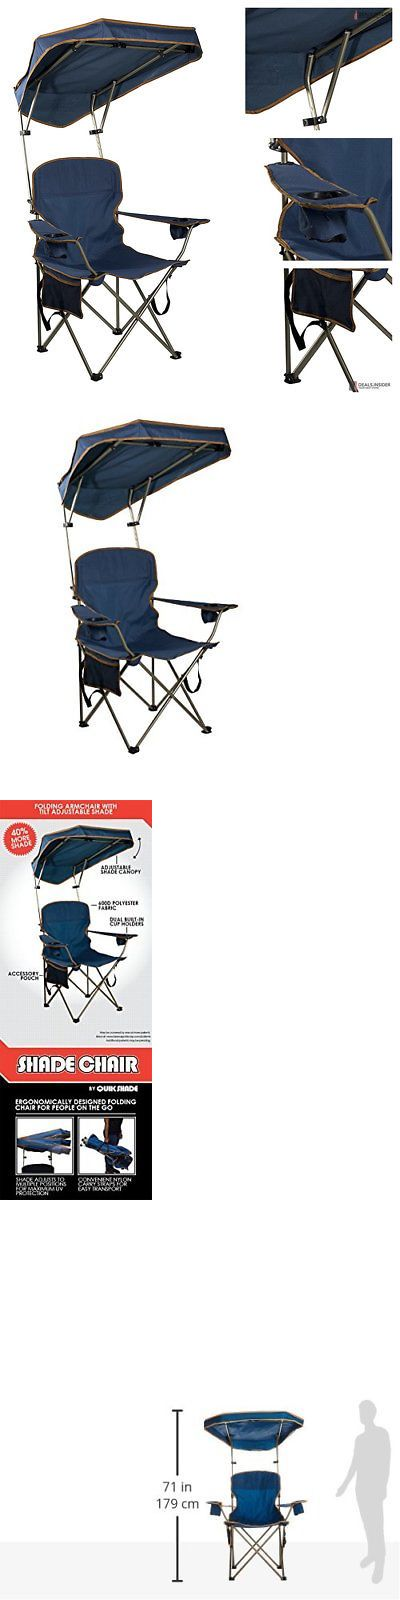 Camping Furniture 16038: Portable Folding Camp Shade Canopy Umbrella Chair Cup Hold Camping Beach Travel -> BUY IT NOW ONLY: $30.59 on eBay!